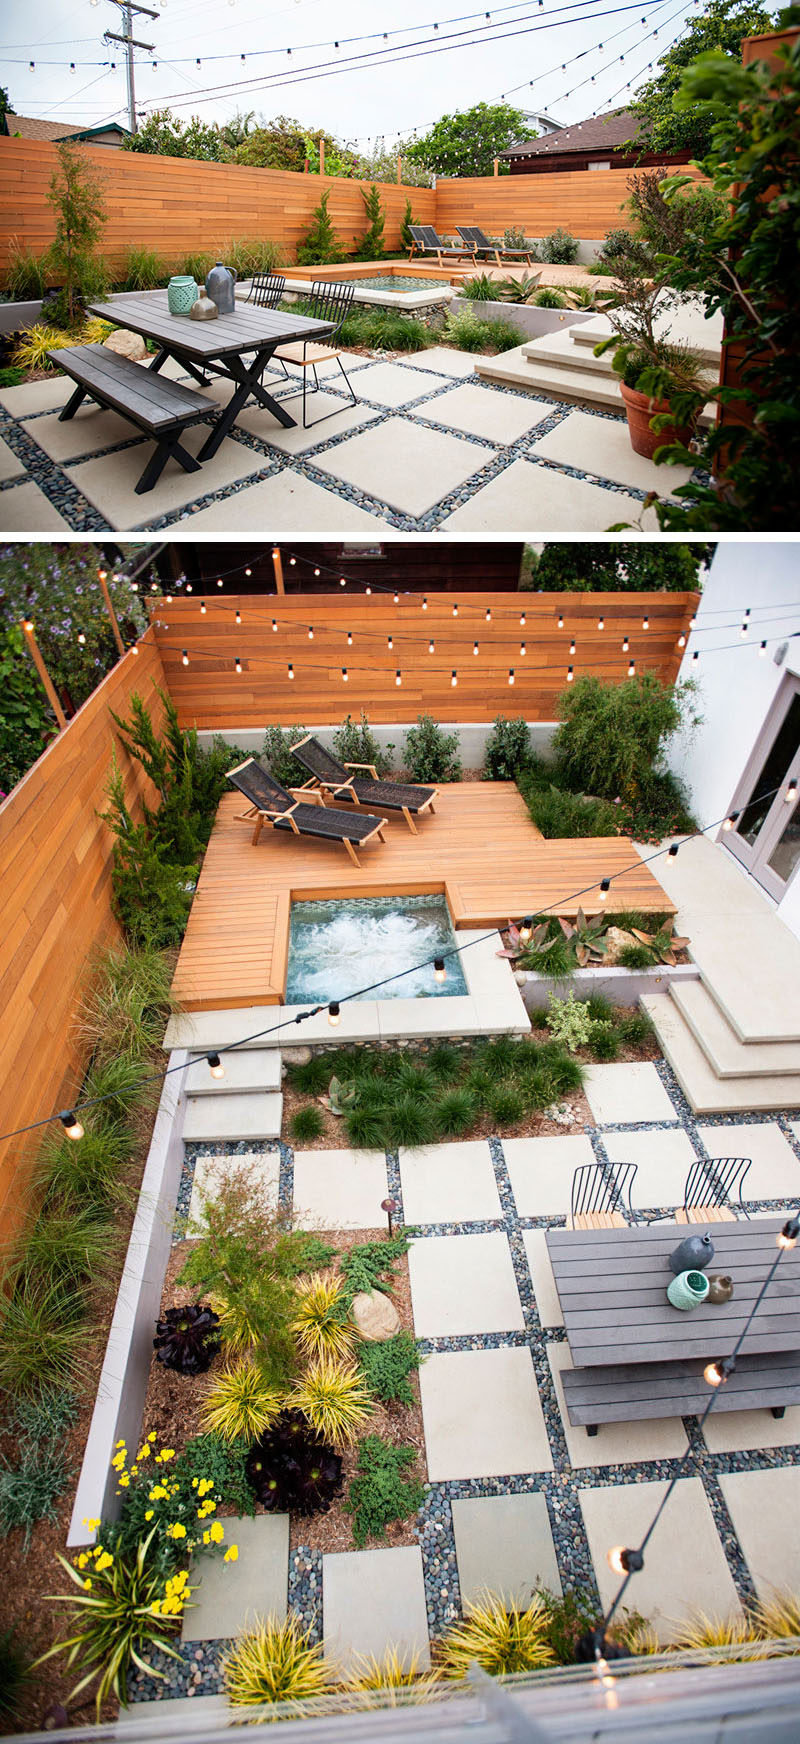 Landscaping Design Ideas   11 Backyards Designed For Entertaining | The  Multiple Levels Of This Backyard